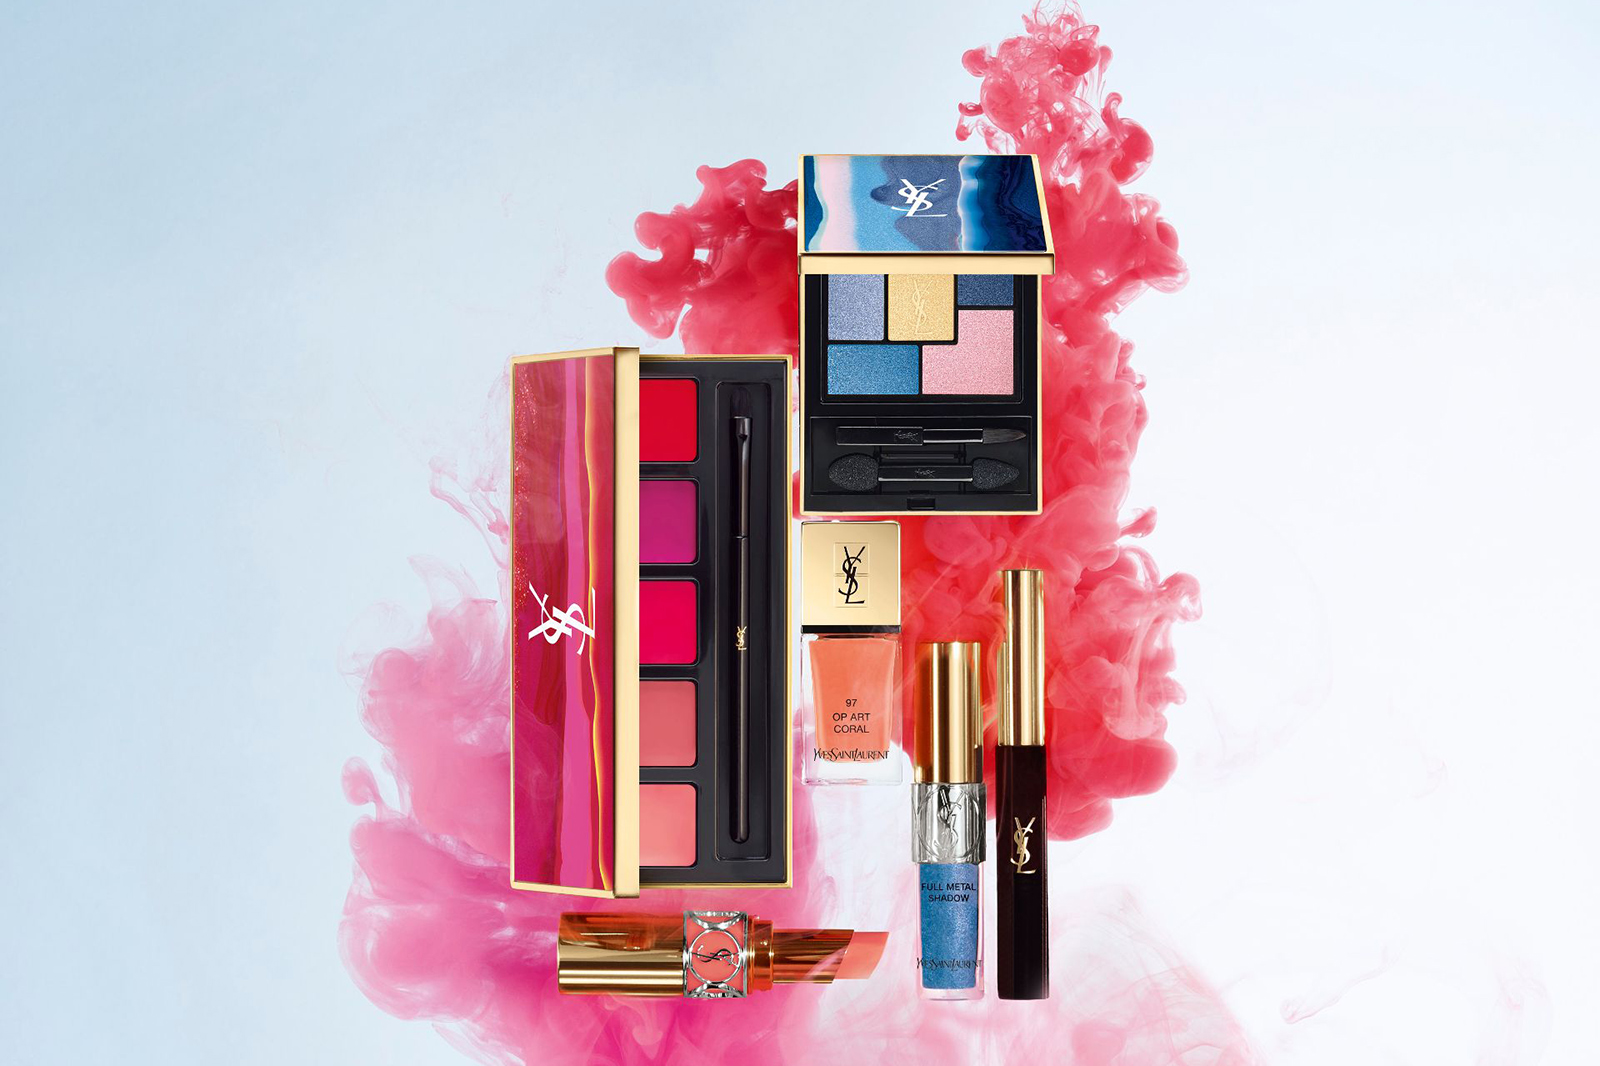 ysl maquillage printemps spring 2017